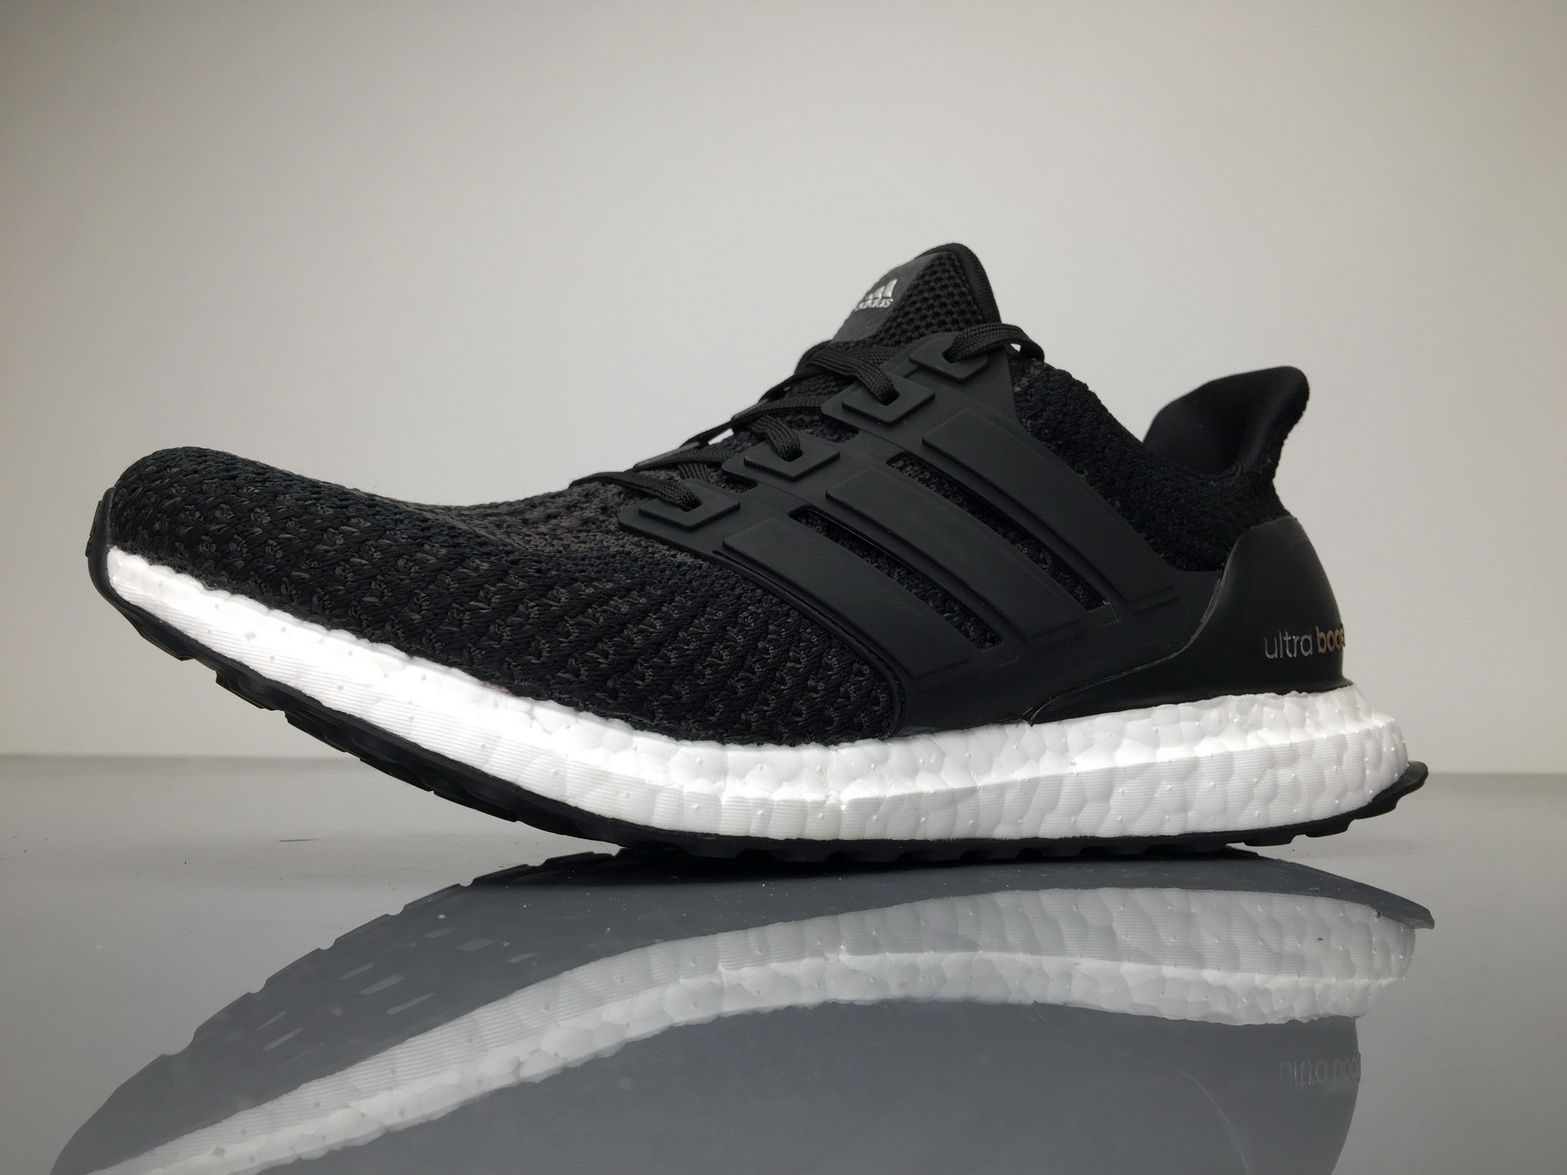 b99aa5f6509bf Buy Best Price Adidas Nike Sport Sneakers. Adidas Ultra Boost ...